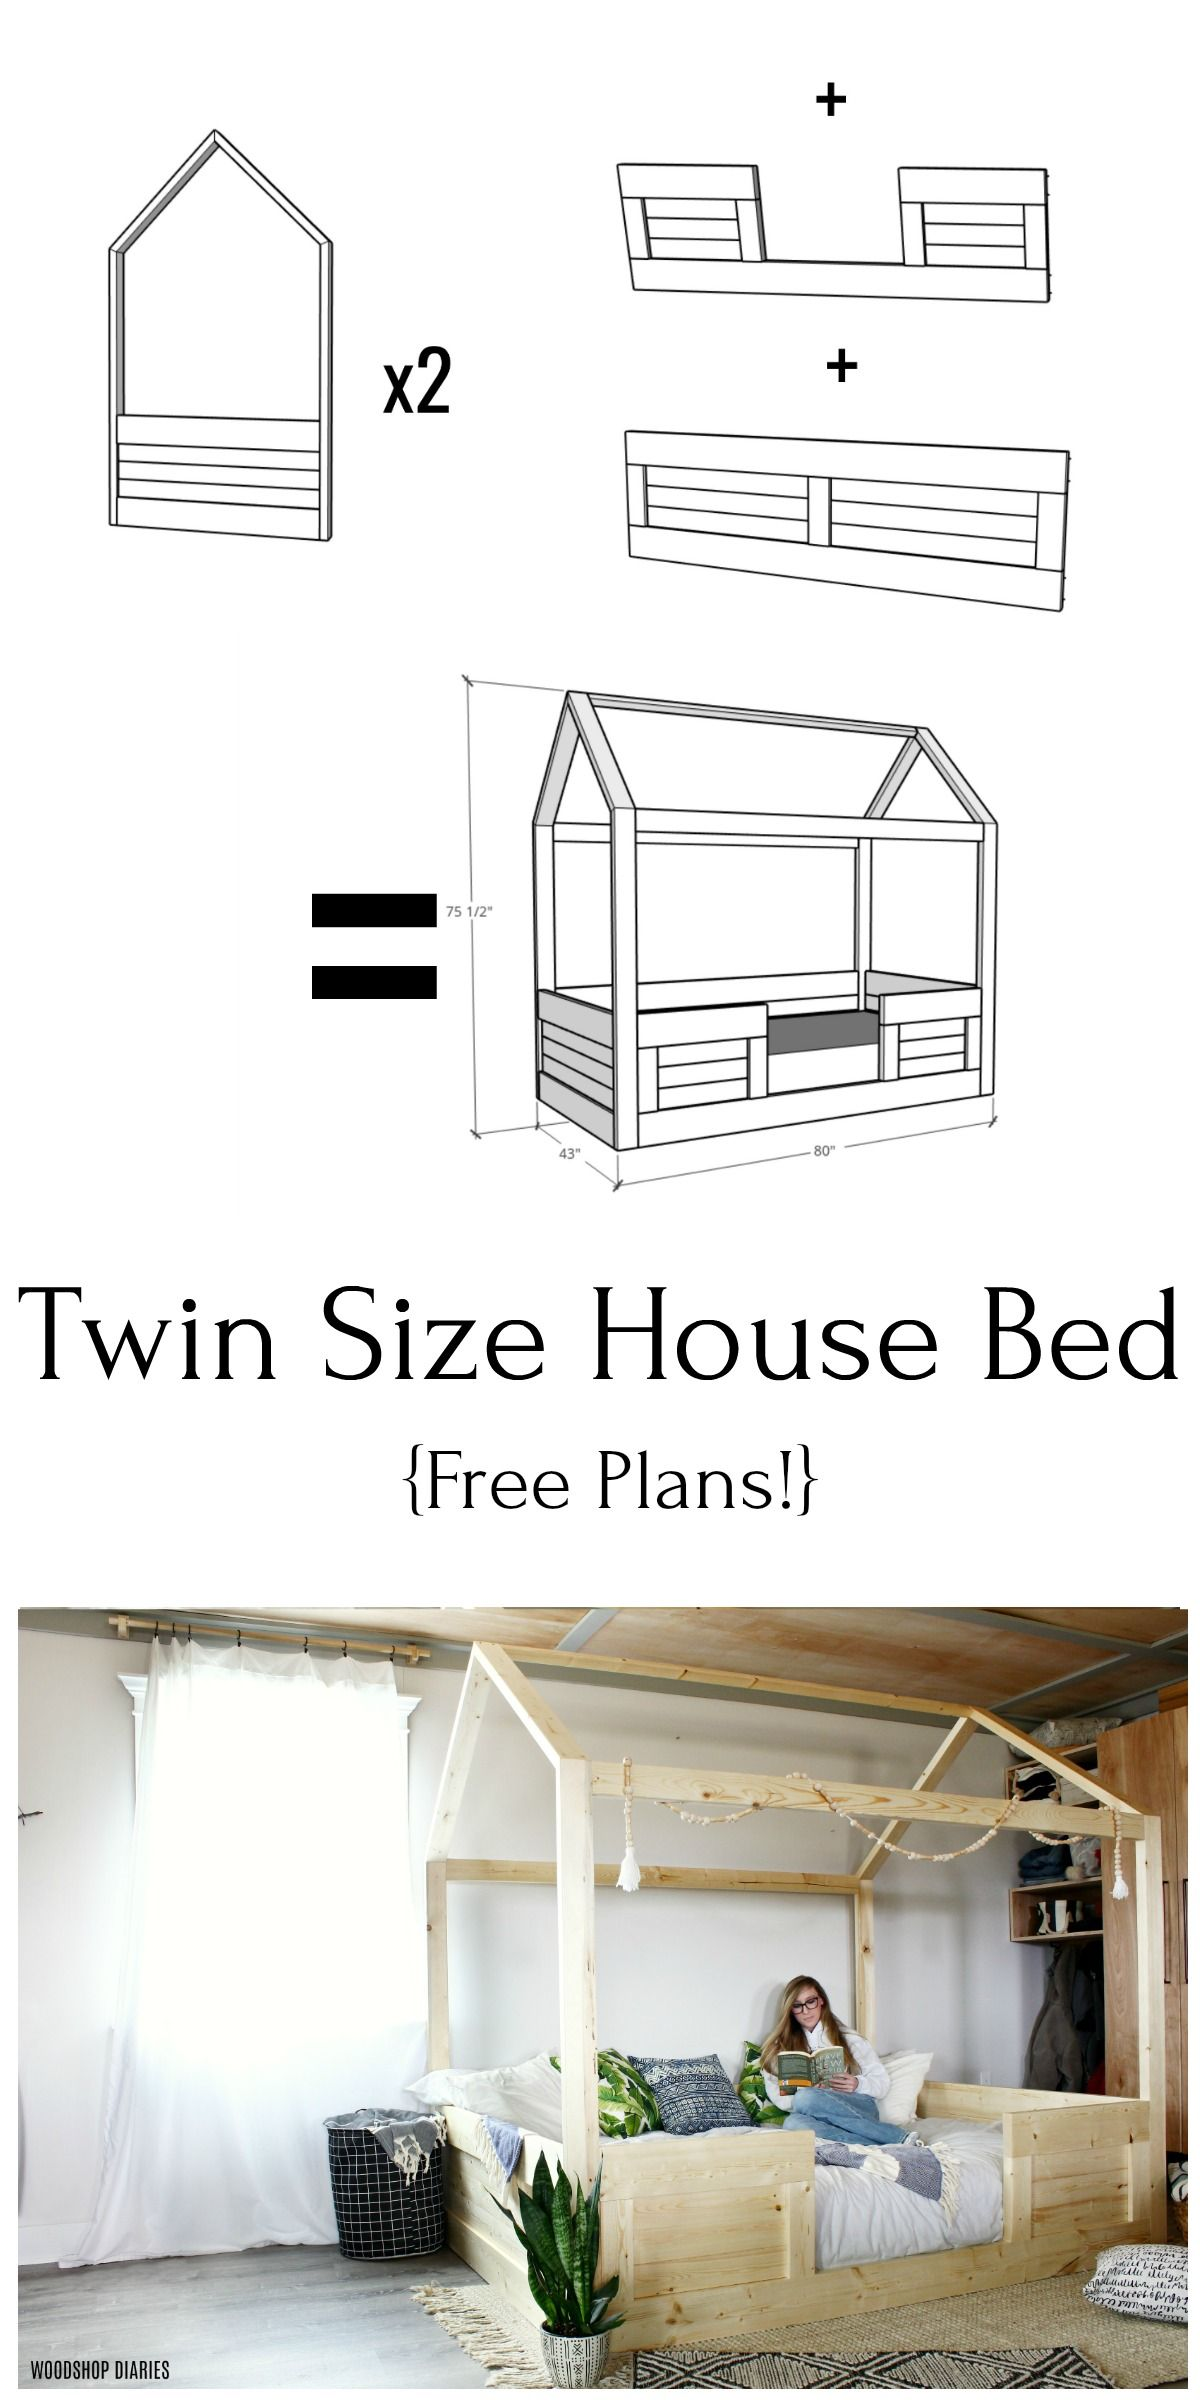 Diy Kids House Bed In 2020 House Beds For Kids House Beds Diy